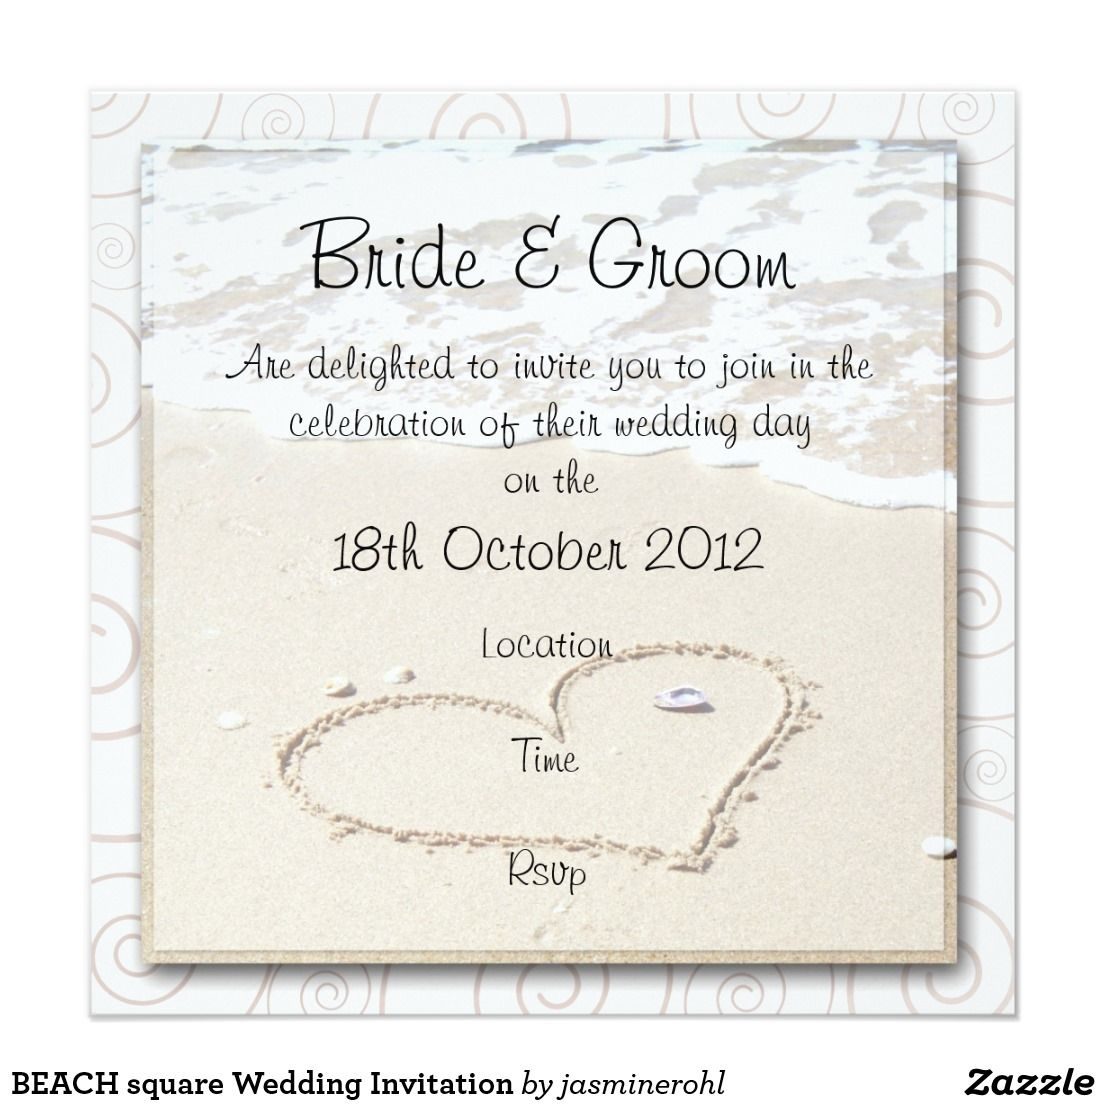 BEACH square Wedding Invitation | Square wedding invitations, Beach ...